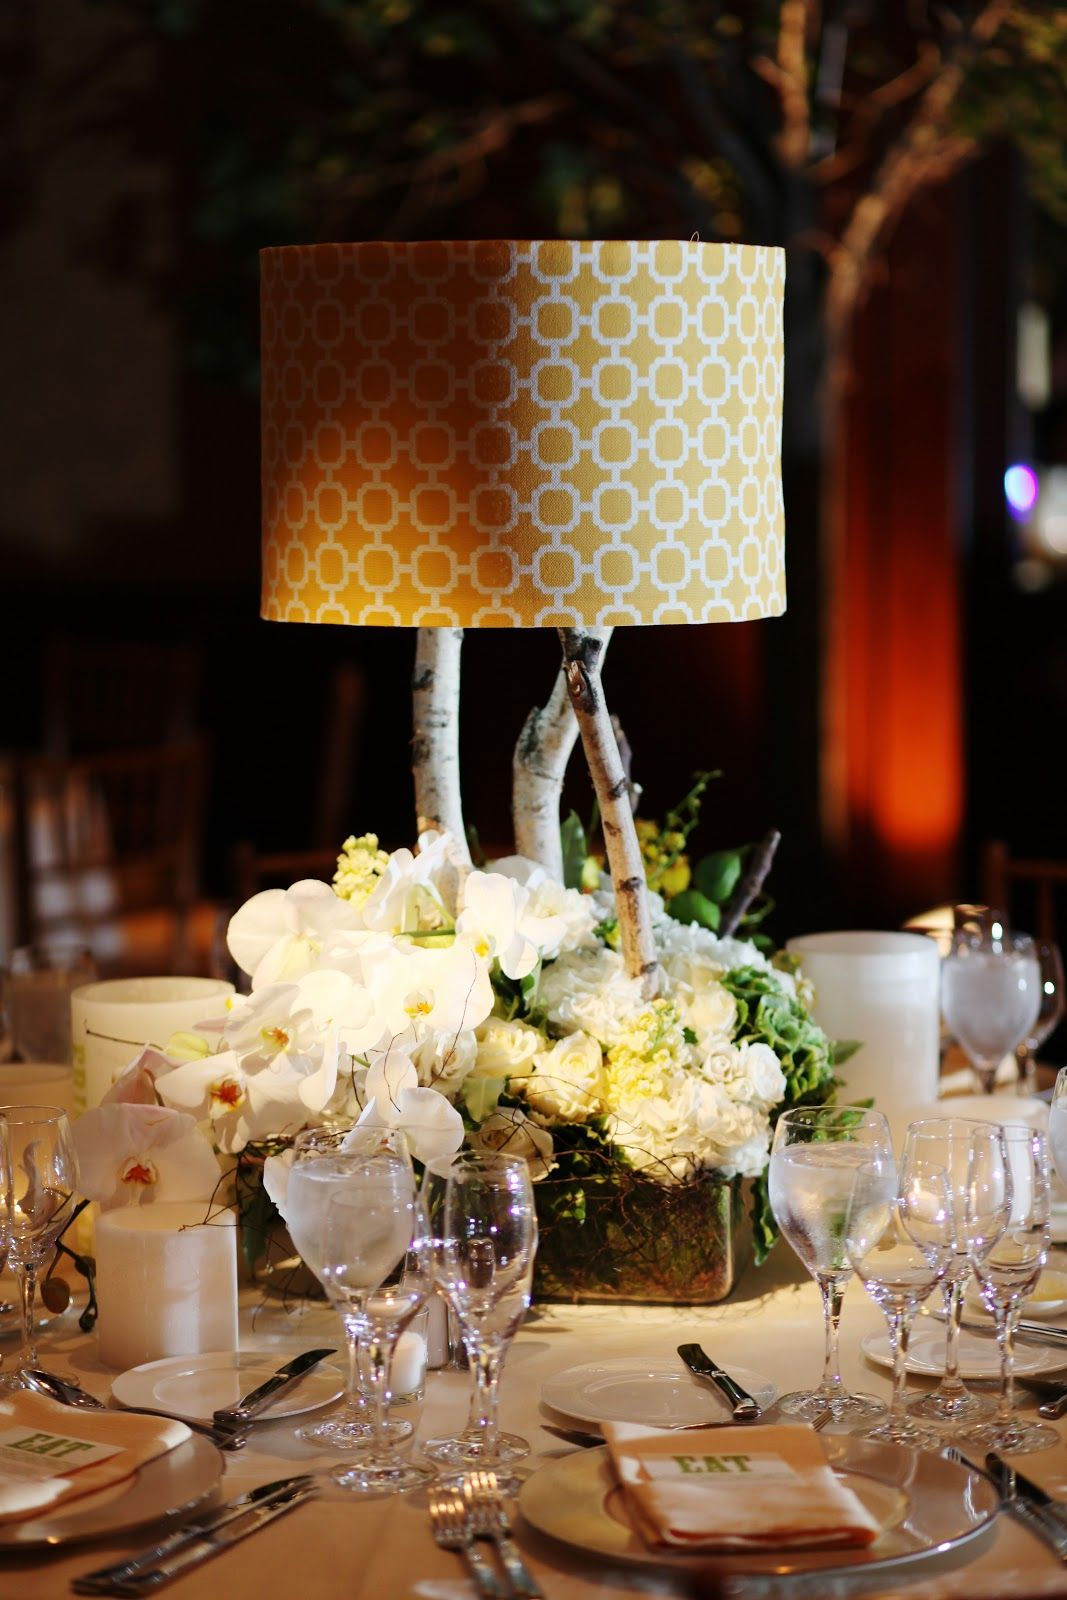 Surprising Earthy Fl Touches Like Figs And Clematis As Well Introduced Unexpected Elements Birch Table Lamps With Yellow Lattice Lampshades